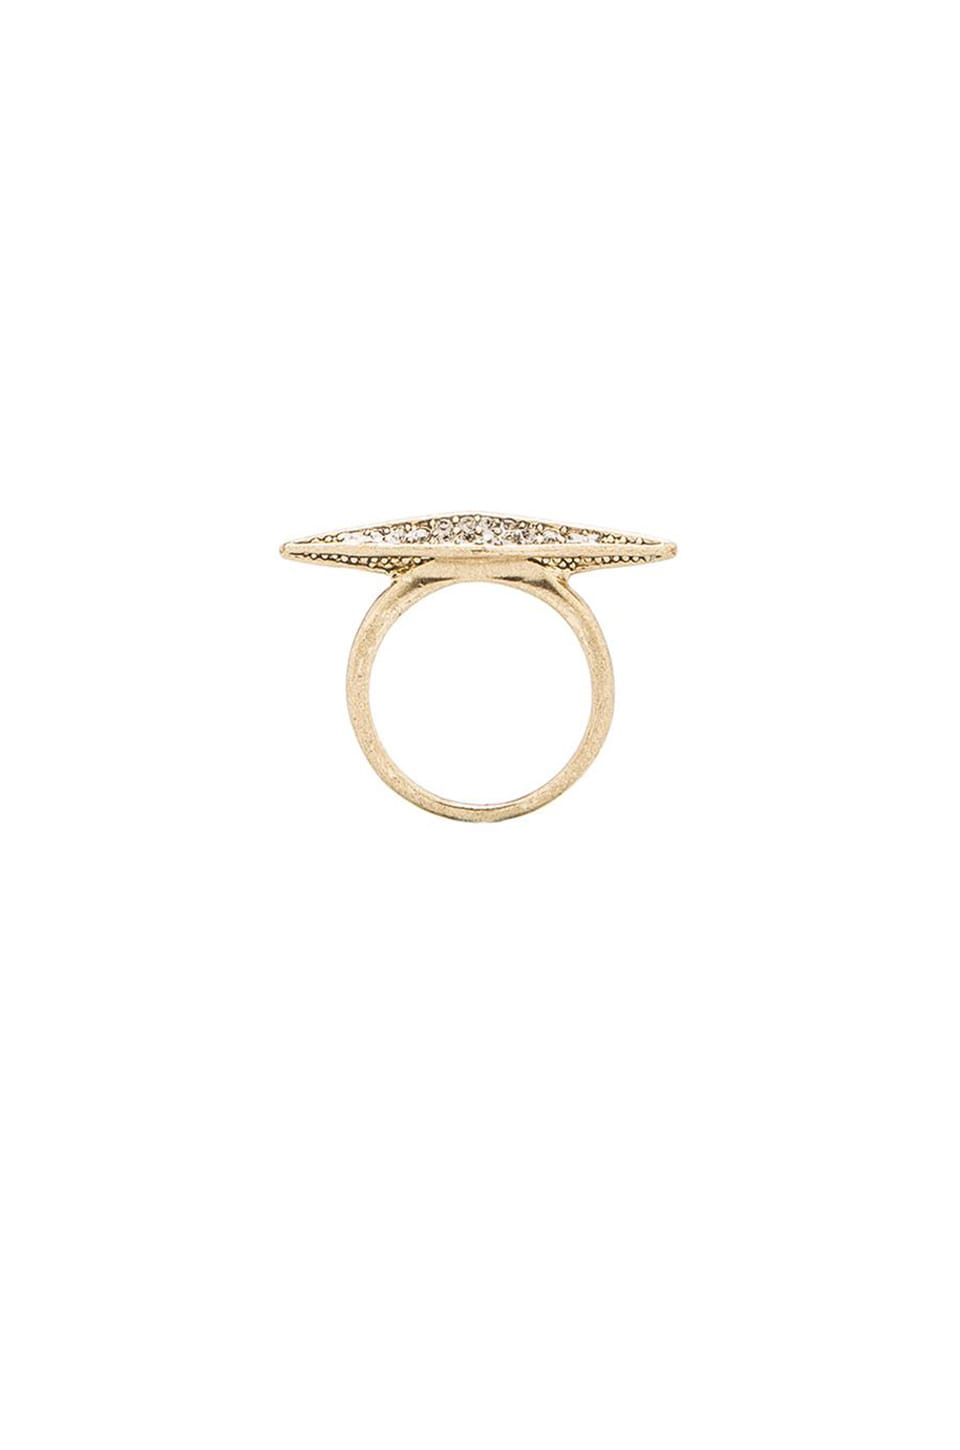 House of Harlow 1960 House of Harlow Sparkling Marquis Ring in Gold